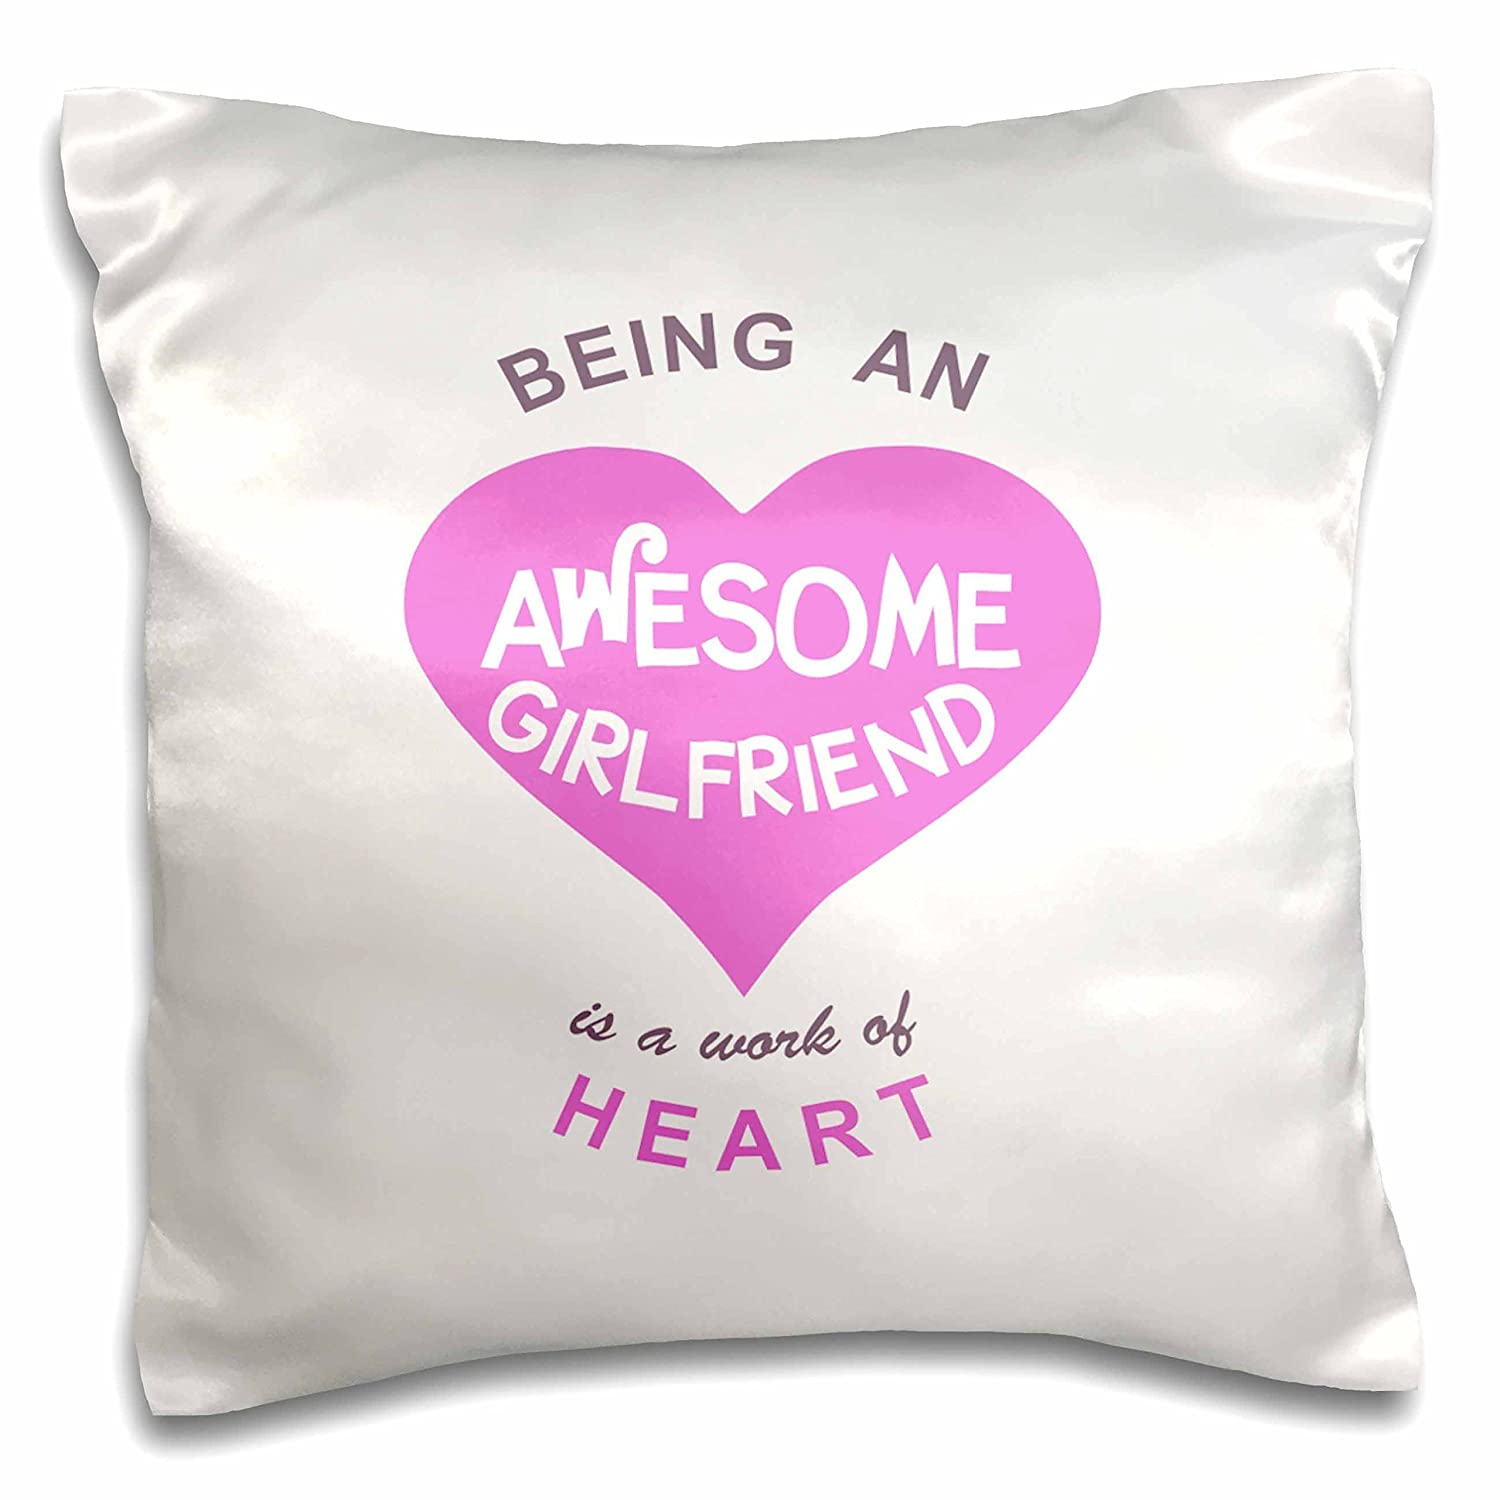 16 by 16 3dRose Being an Awesome Girlfriend is A Work of Heart-Pink GF Quote Gift-Pillow Case pc/_183866/_1